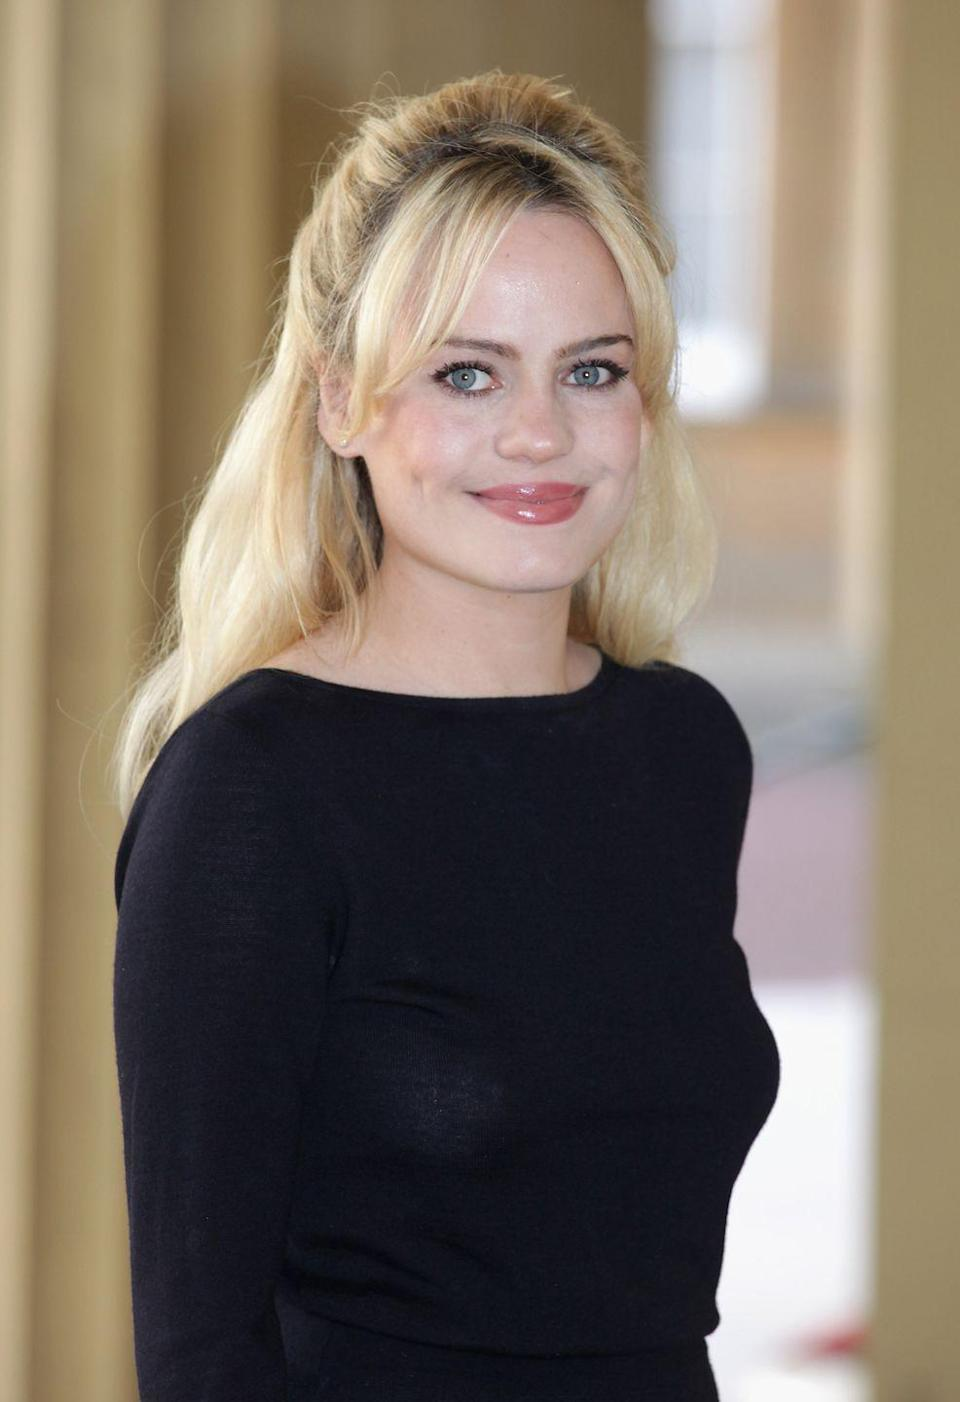 """<p>The Welsh """"Mercy"""" singer, known as Duffy, <a href=""""http://www.mirror.co.uk/3am/celebrity-news/duffy-reunited-with-twin-sister-297058"""" rel=""""nofollow noopener"""" target=""""_blank"""" data-ylk=""""slk:has a twin sister"""" class=""""link rapid-noclick-resp"""">has a twin sister</a> named Katy. However, the sisters didn't grow up together, as their parents divorced when they were 10 and Duffy eventually moved in with her father, while Katy lived with their mother.</p>"""